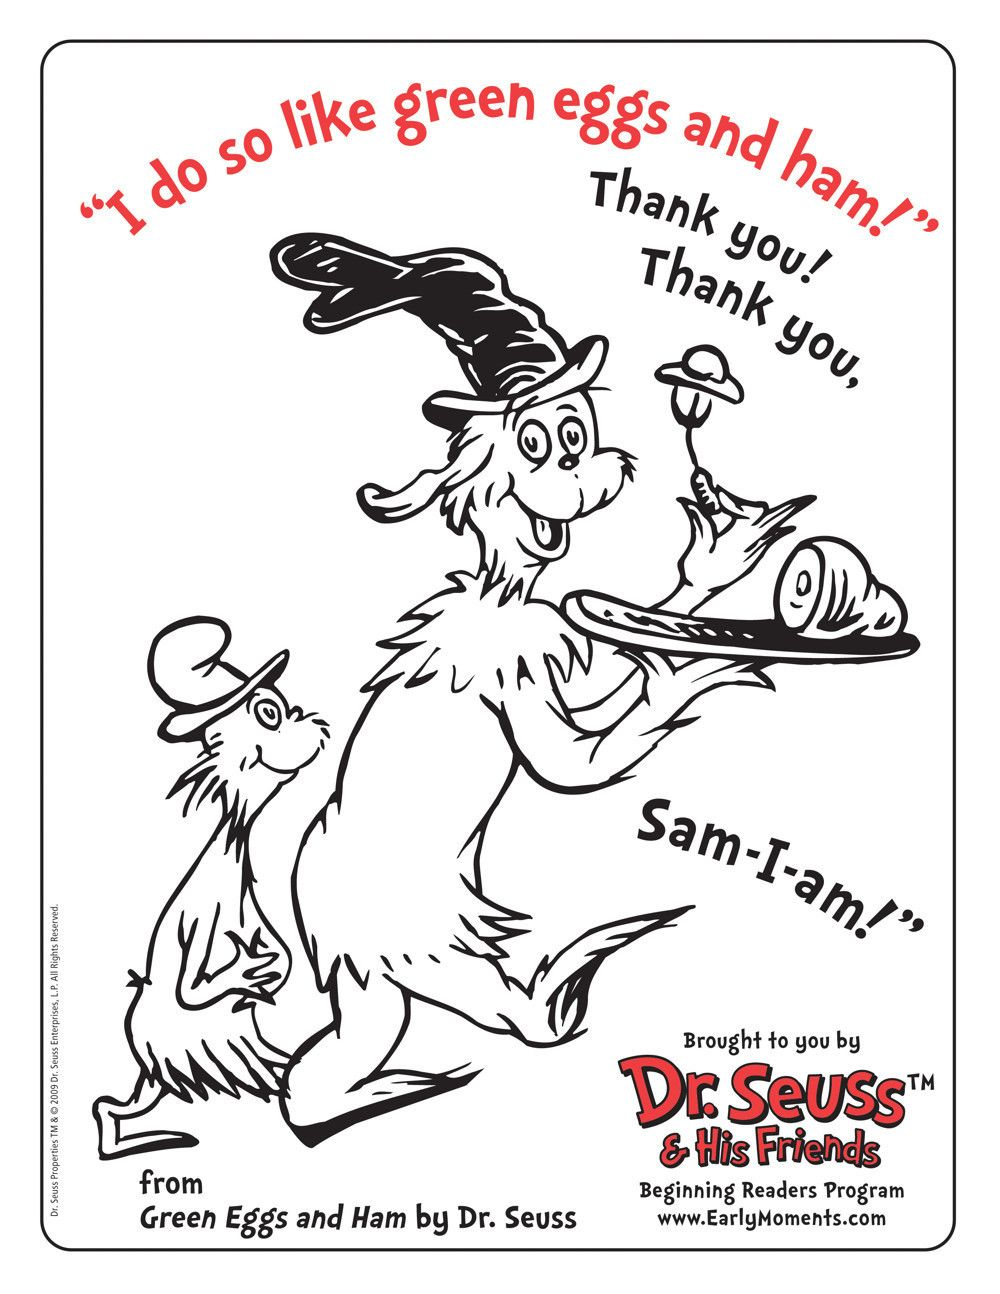 Dr. Seuss and Friends Coloring Contest Contest